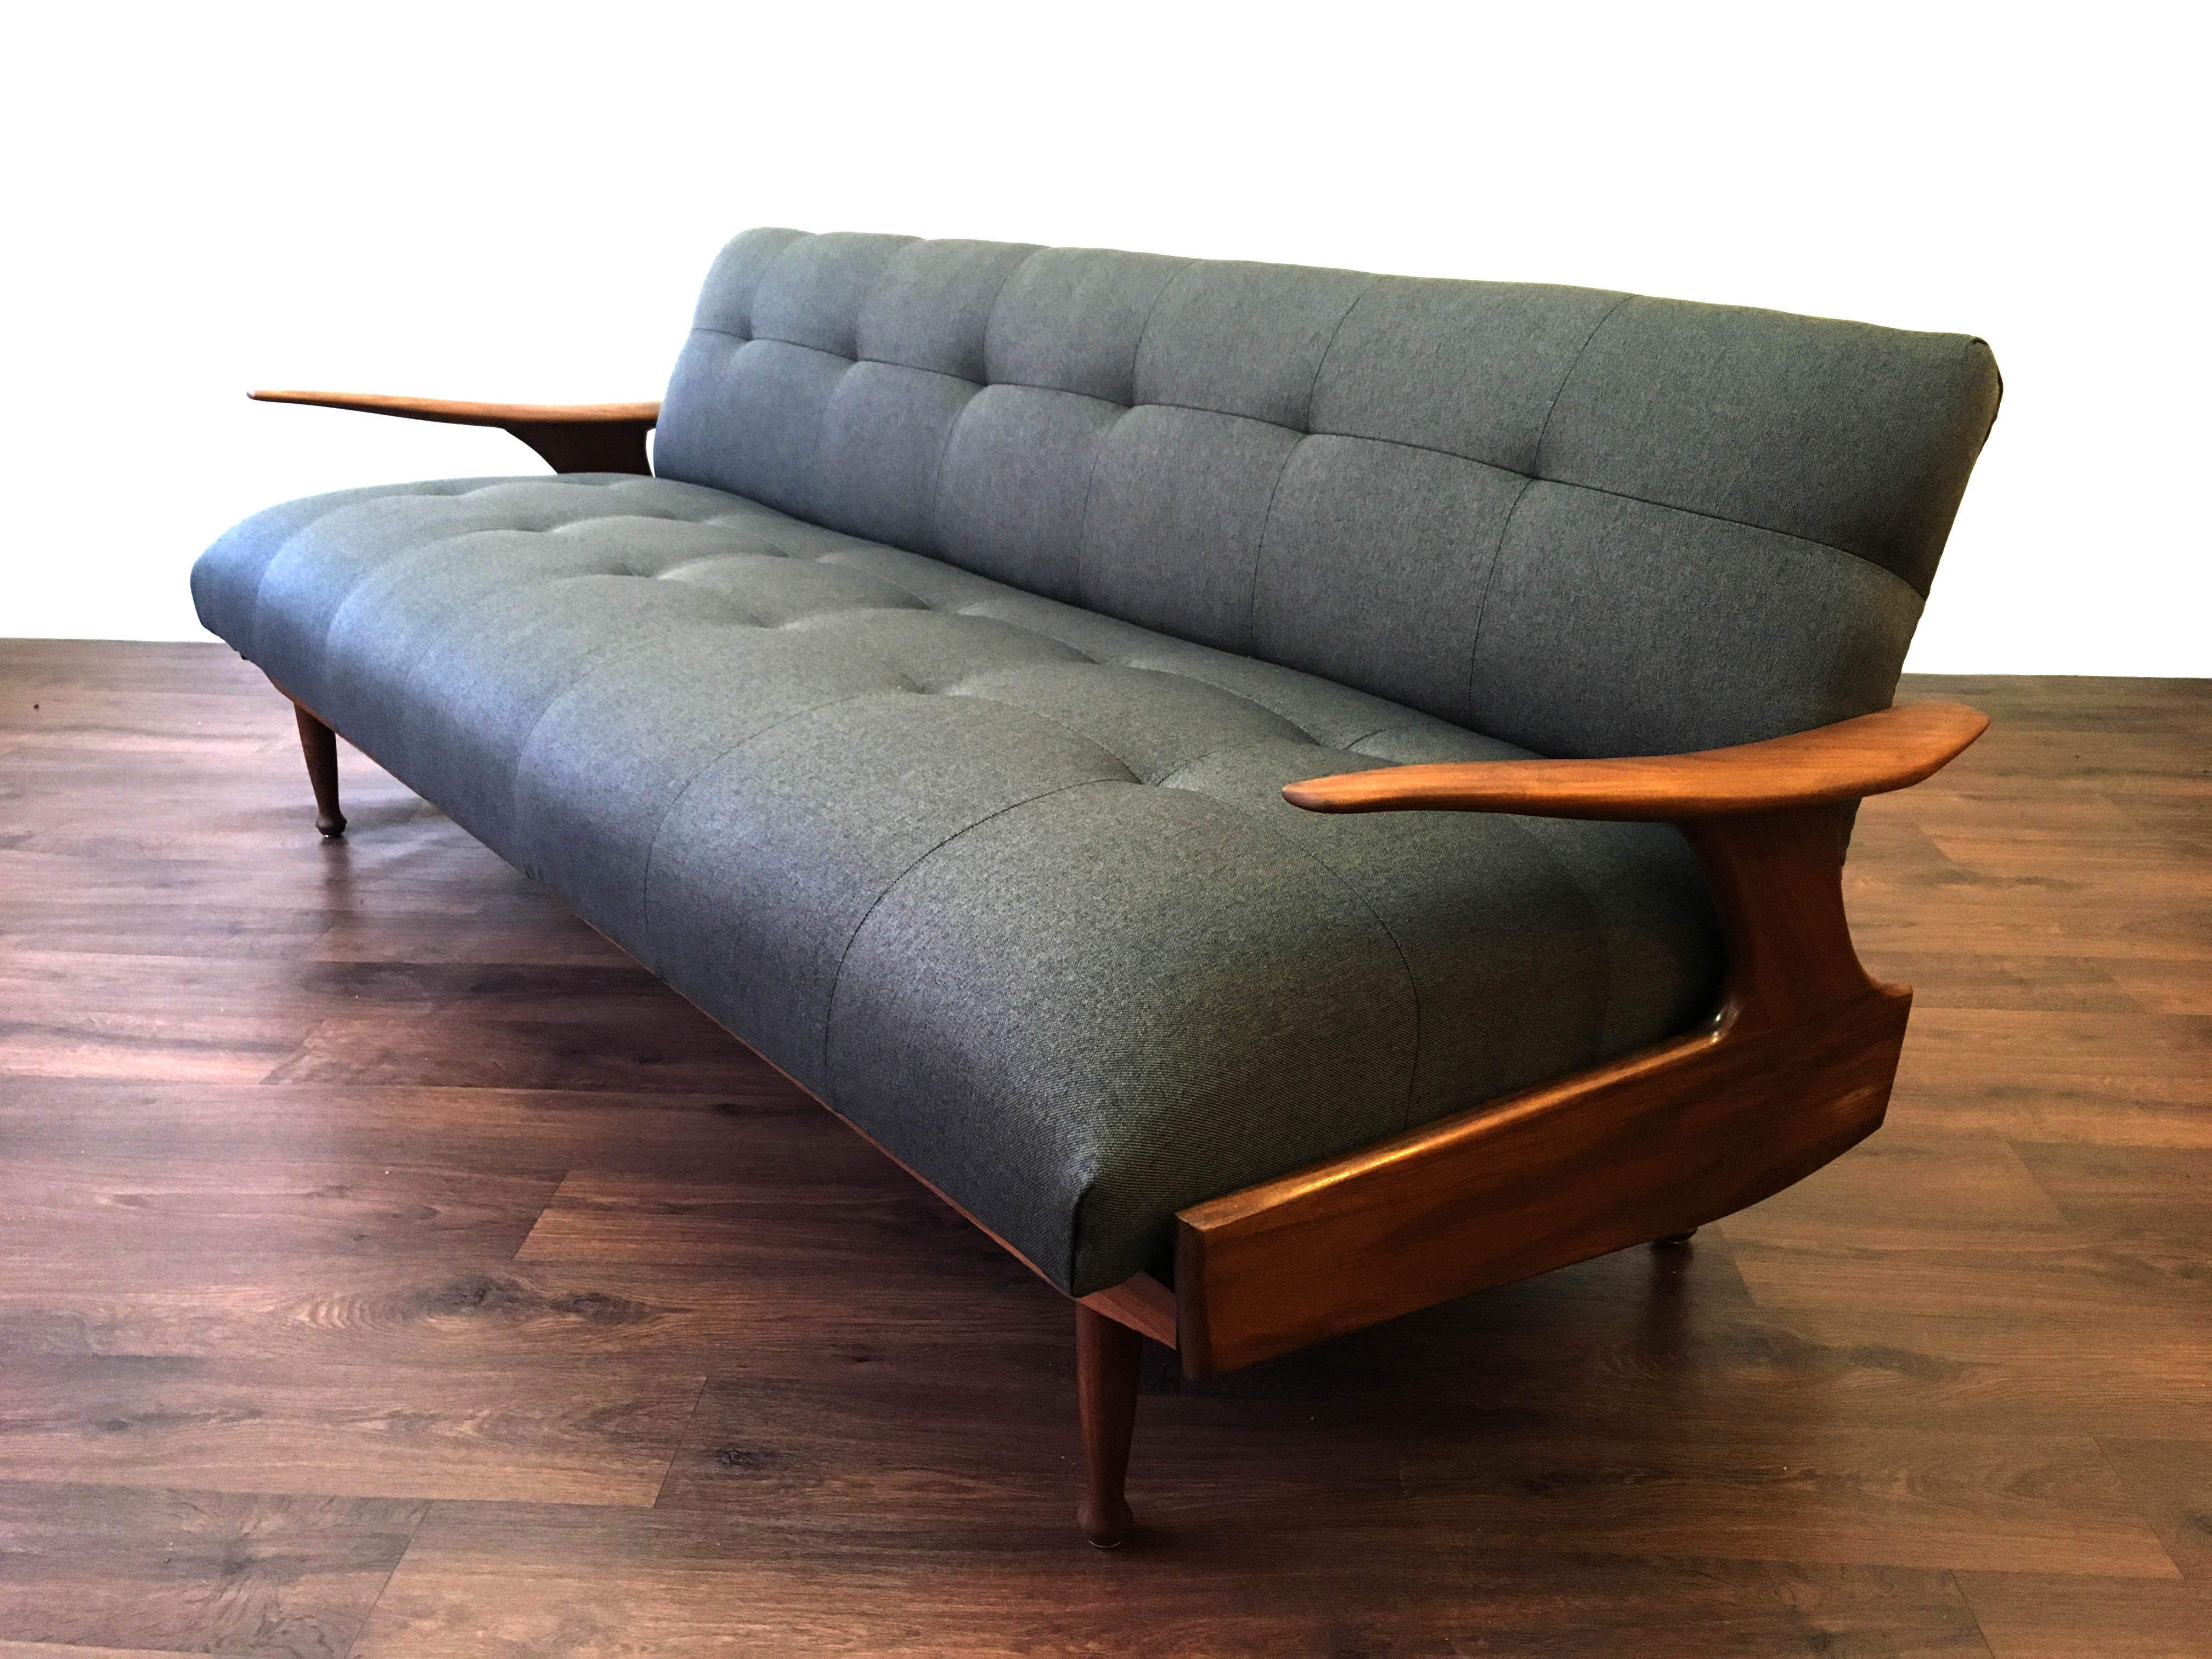 Greaves and Thomas Lofa Lido Sofa